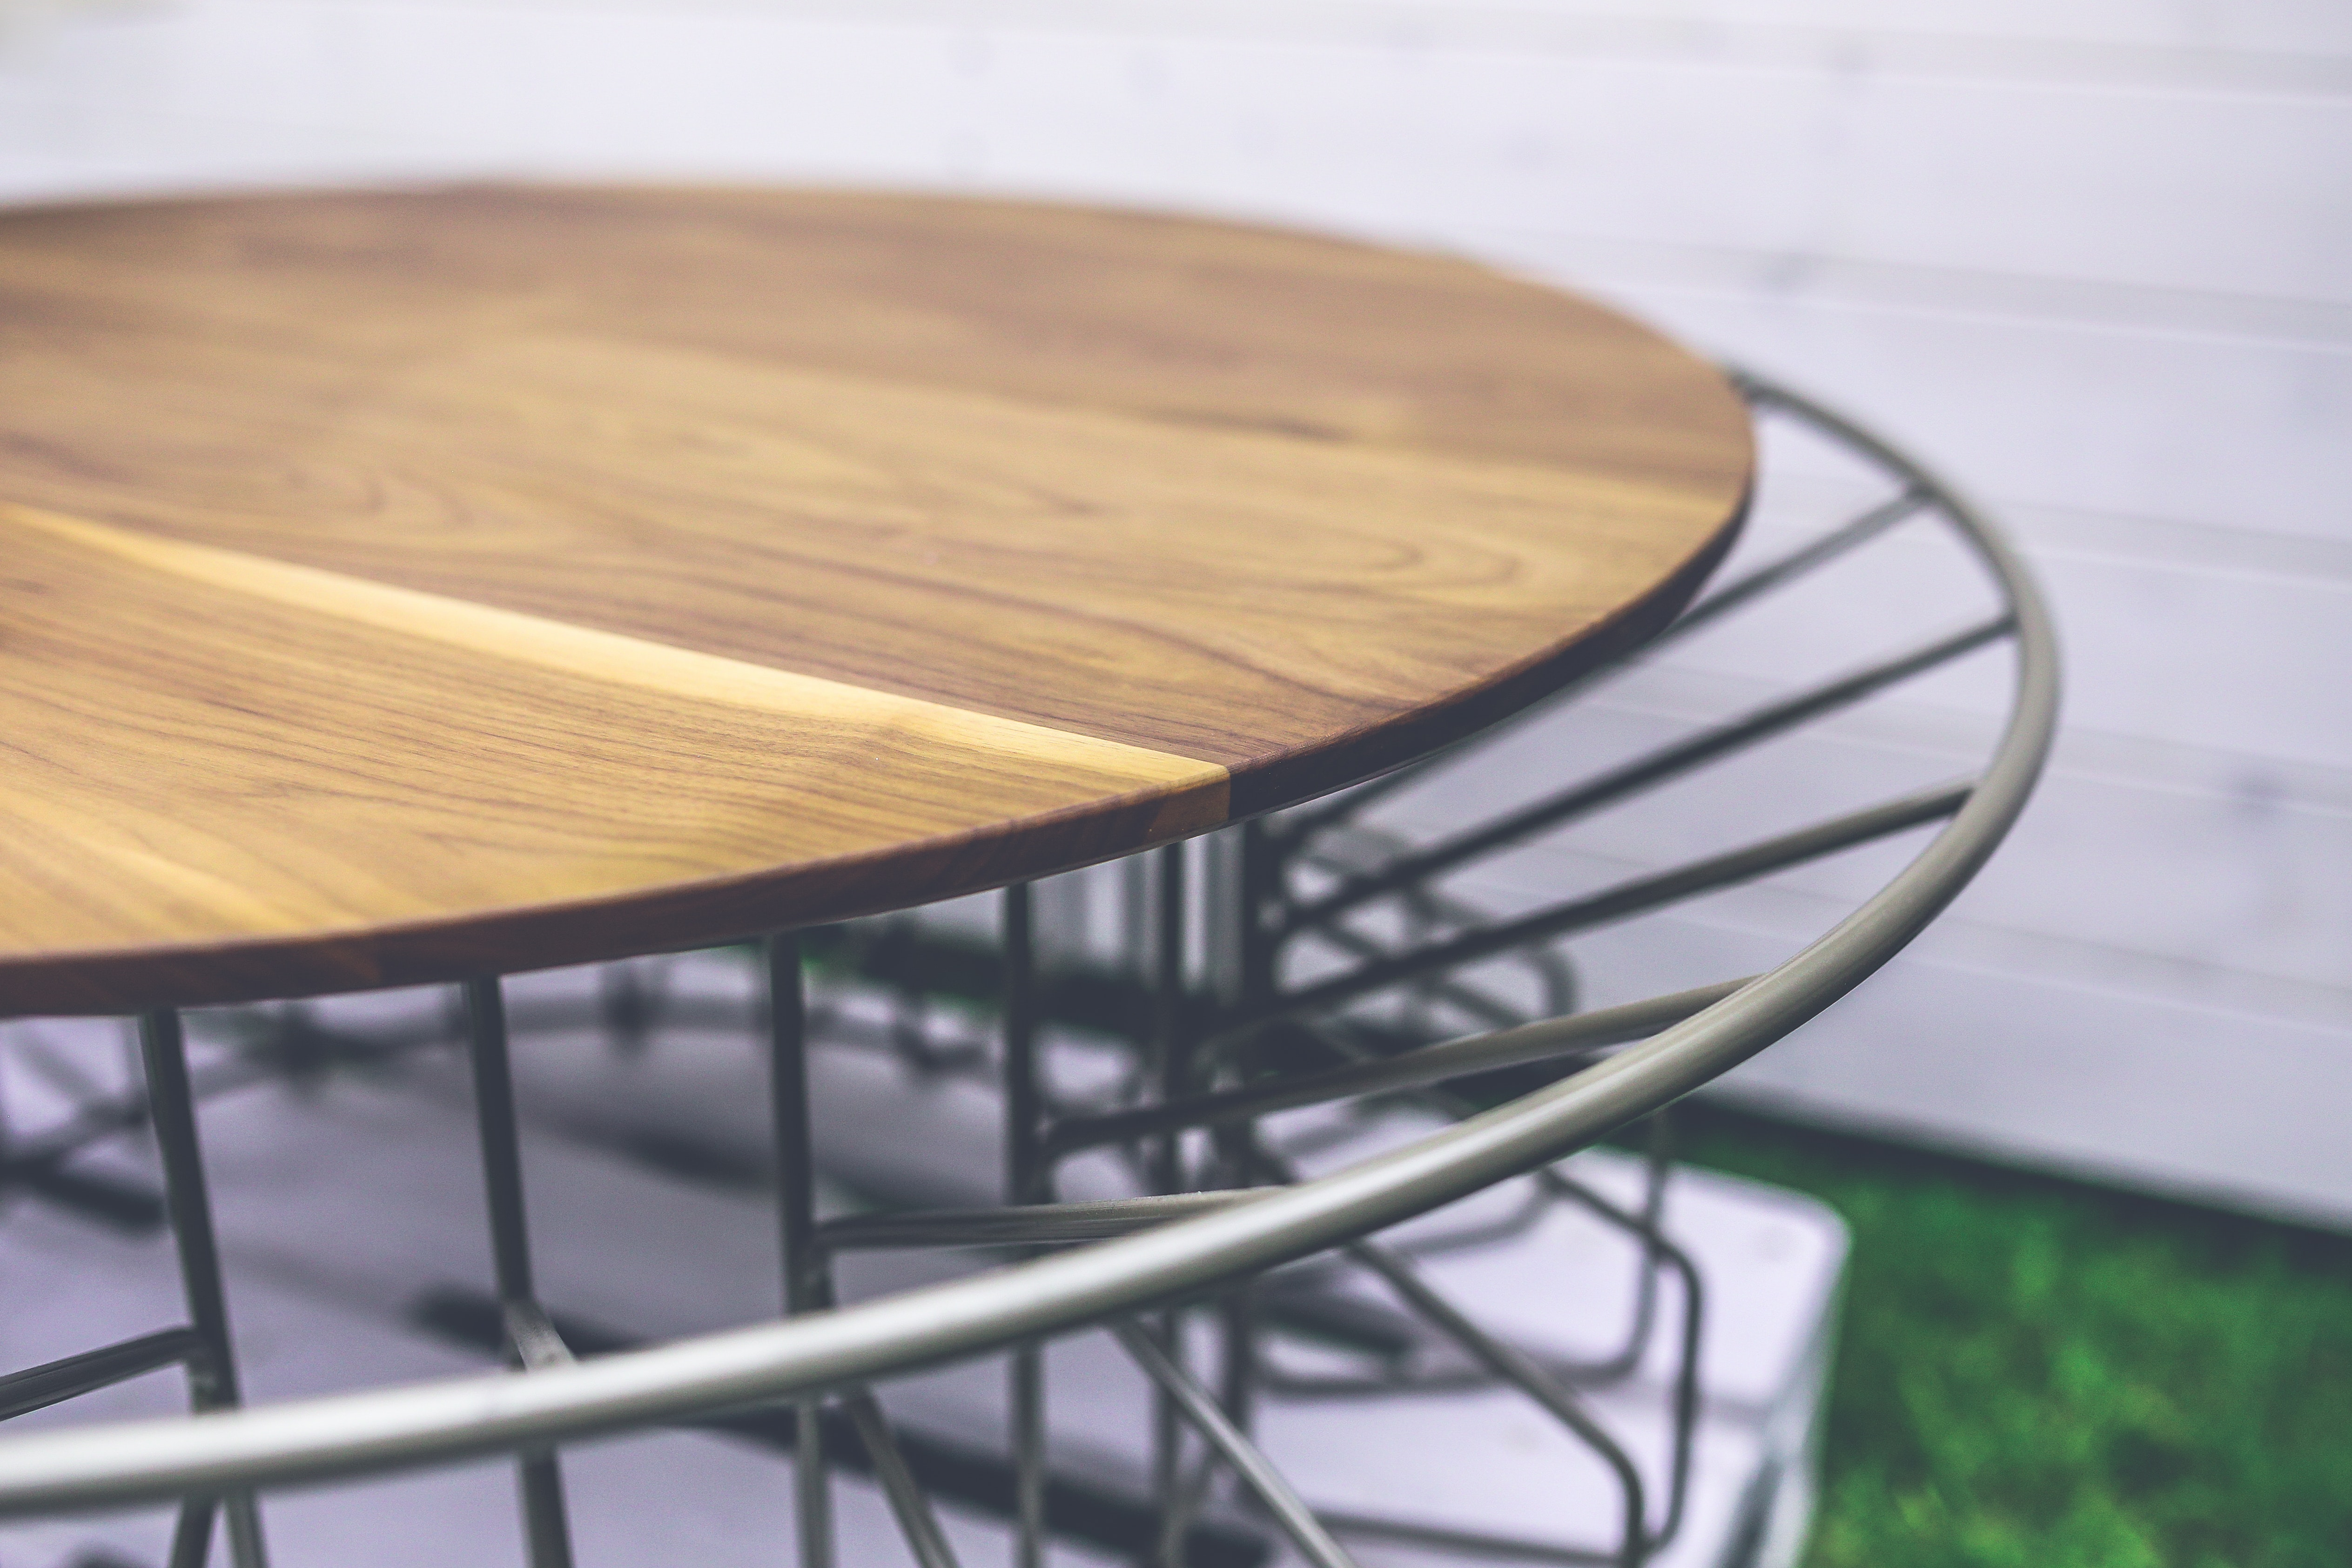 Wood and metal table, Indoors, Wood, Travel, Tennis, HQ Photo